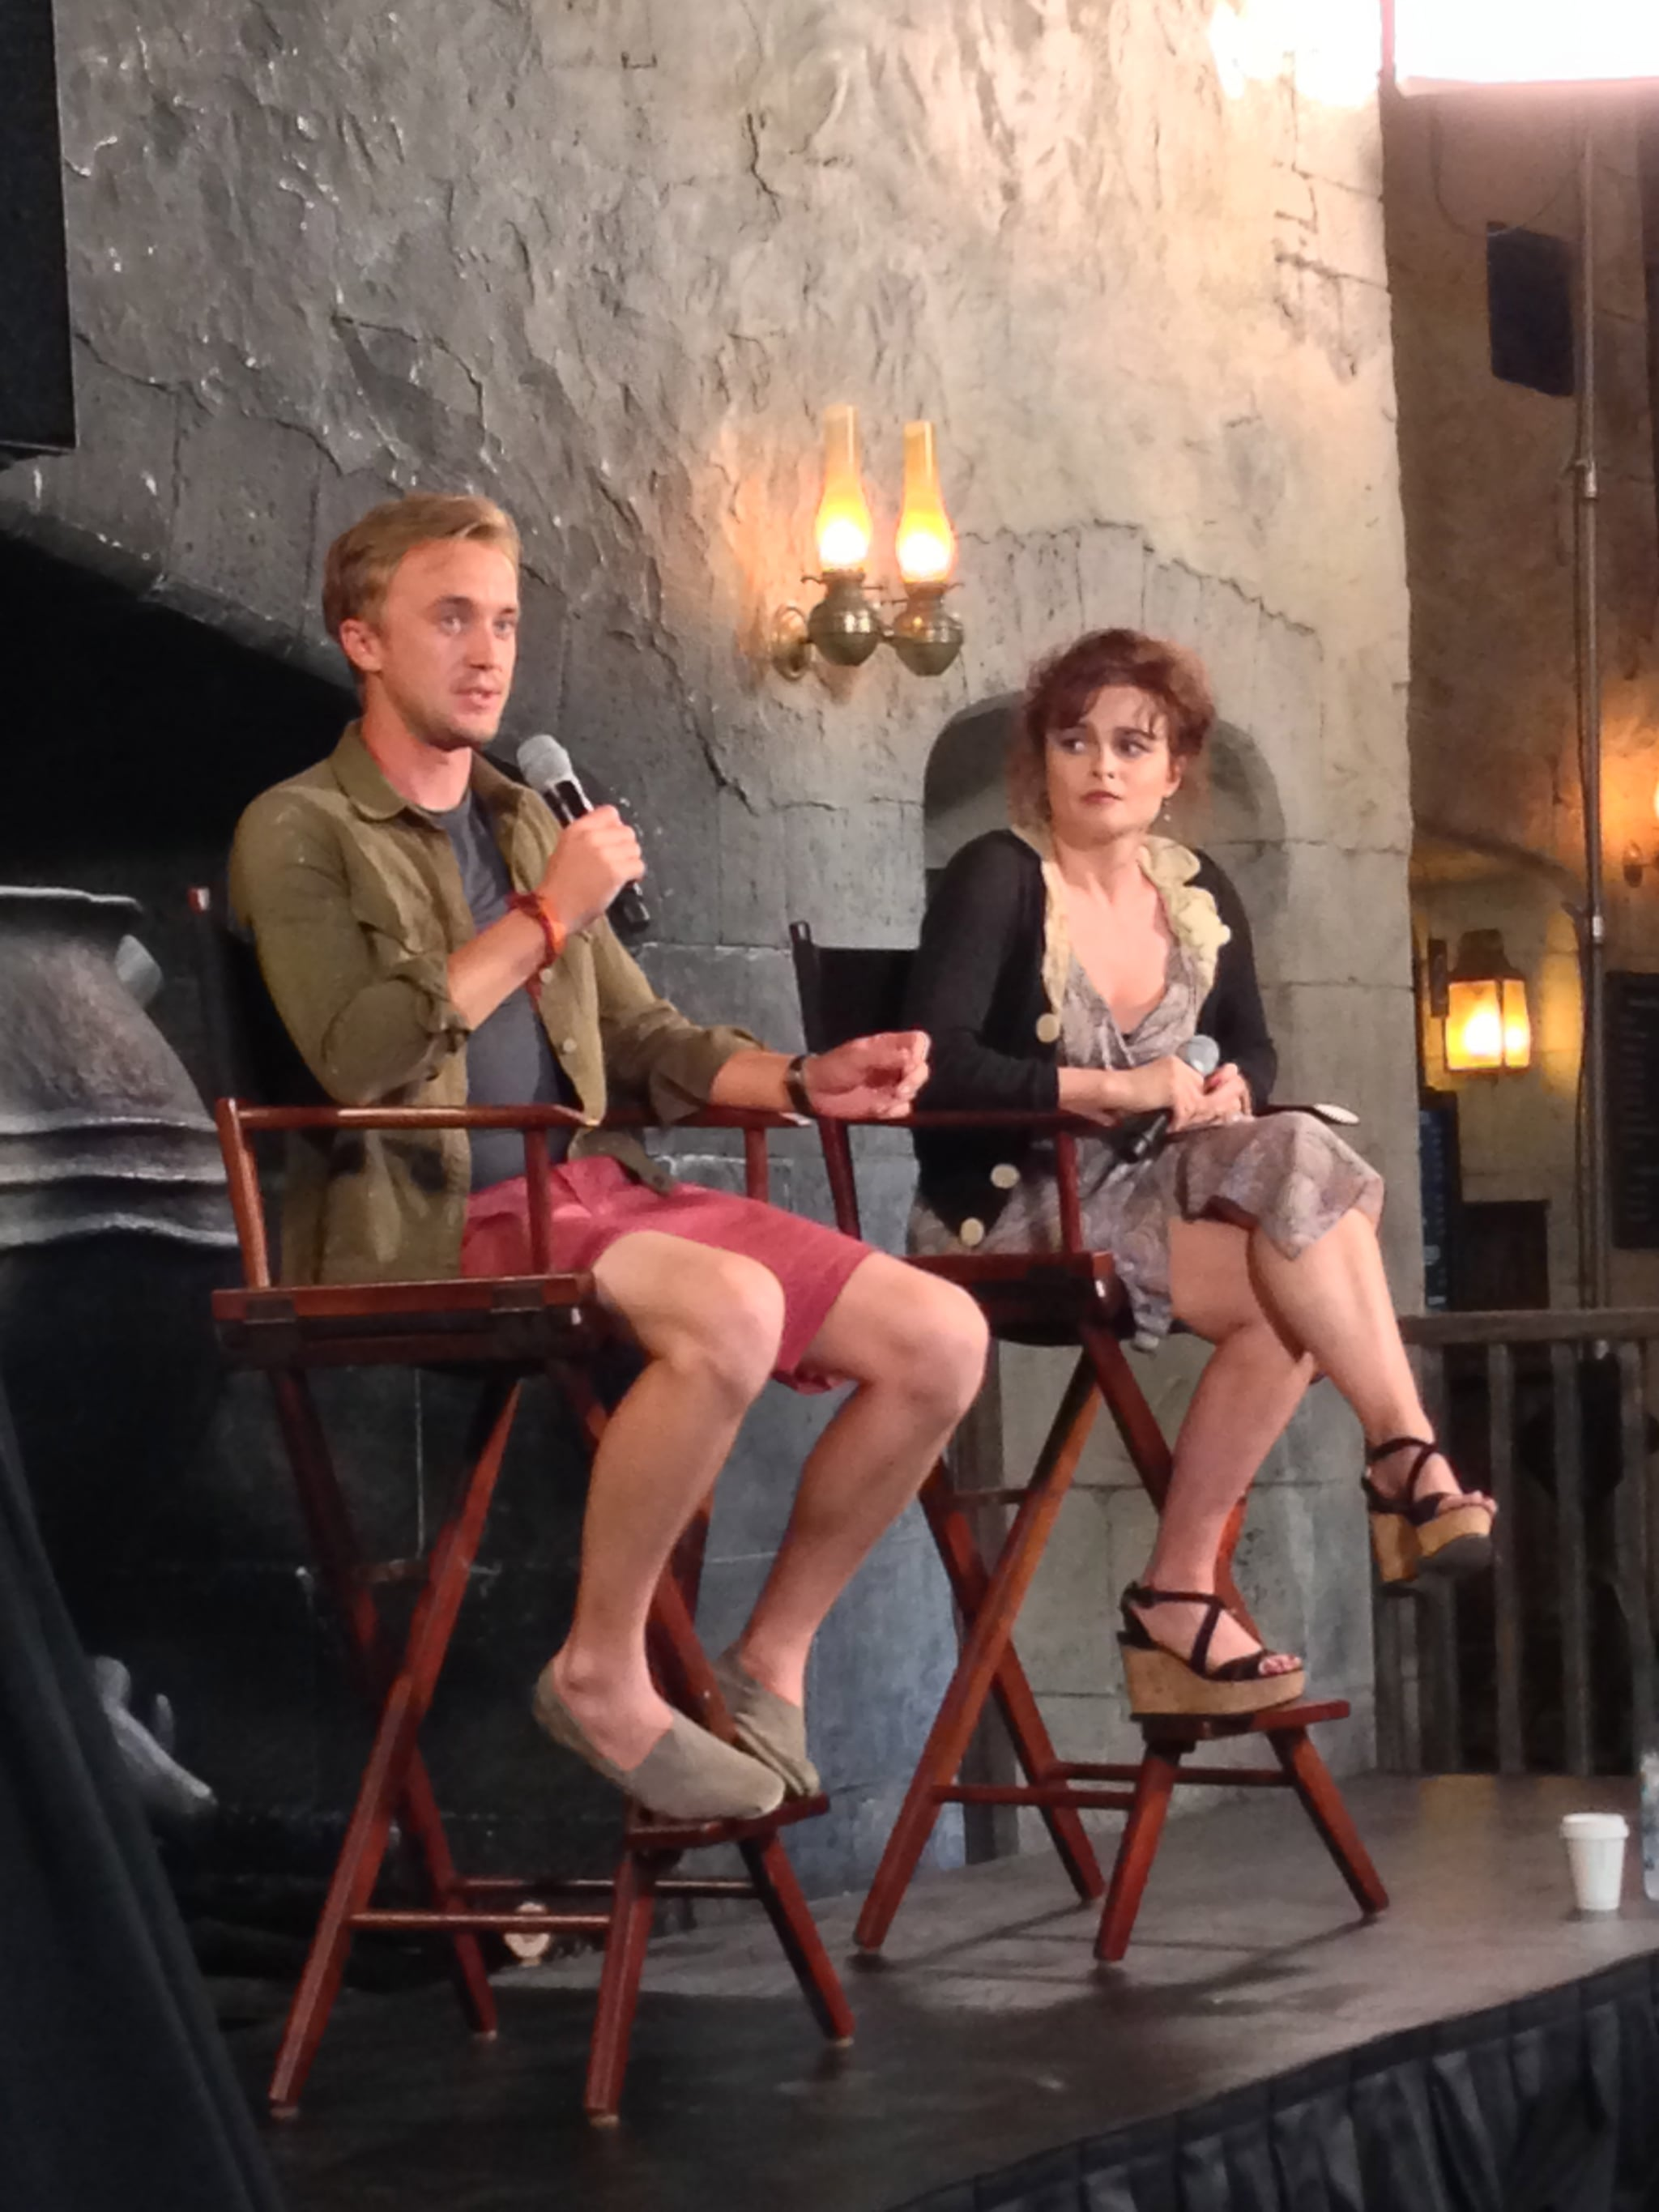 Tom Felton also said he hopes to bring his own little ones to The Wizarding World of Harry Potter some day. Cue the awwws.